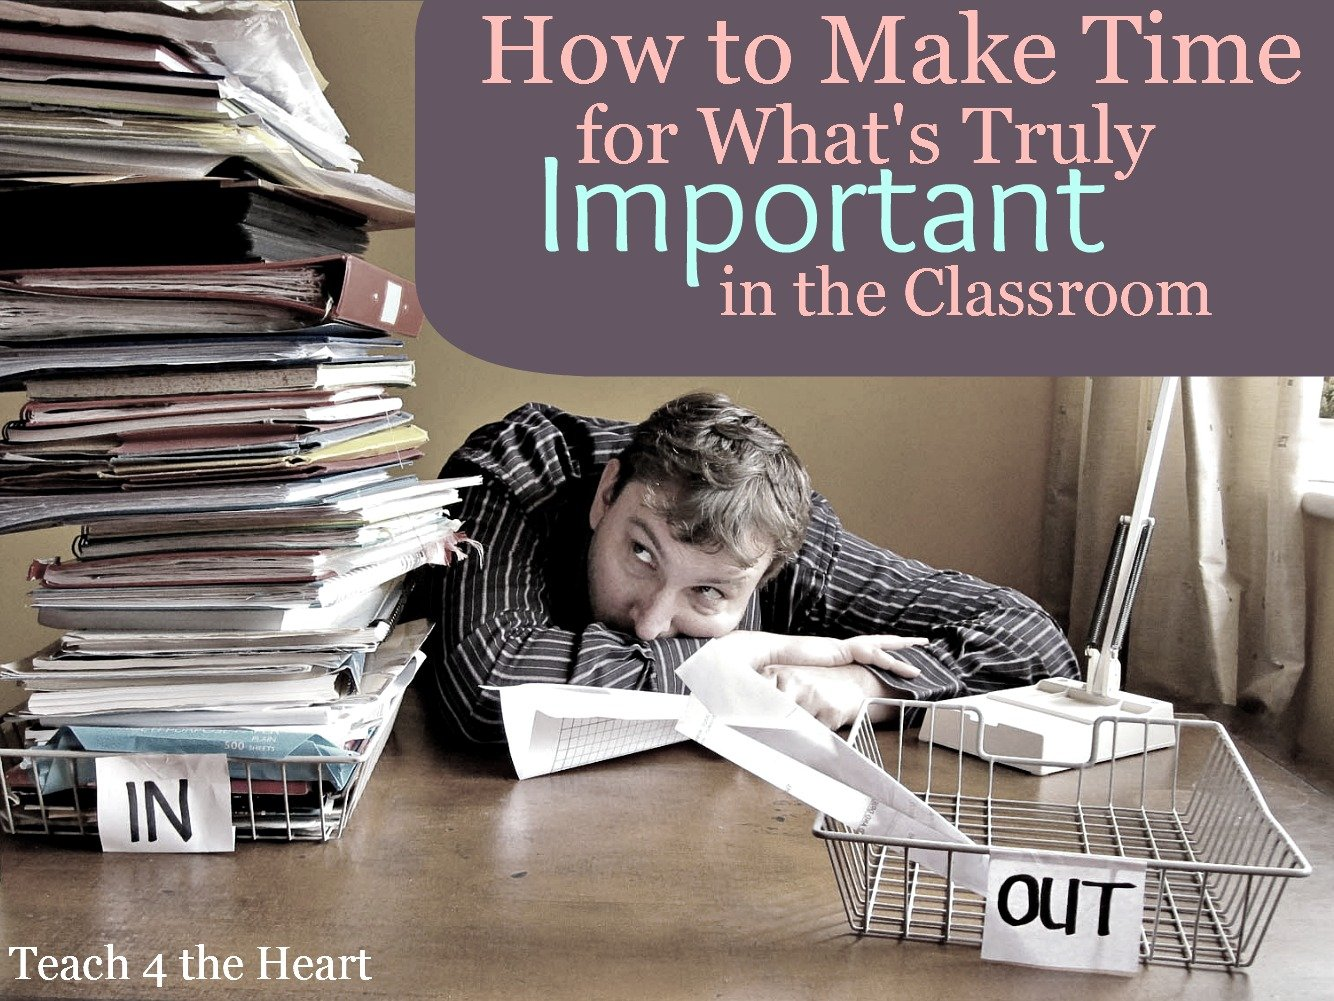 How to Make Time for What's Truly Important in the Classroom